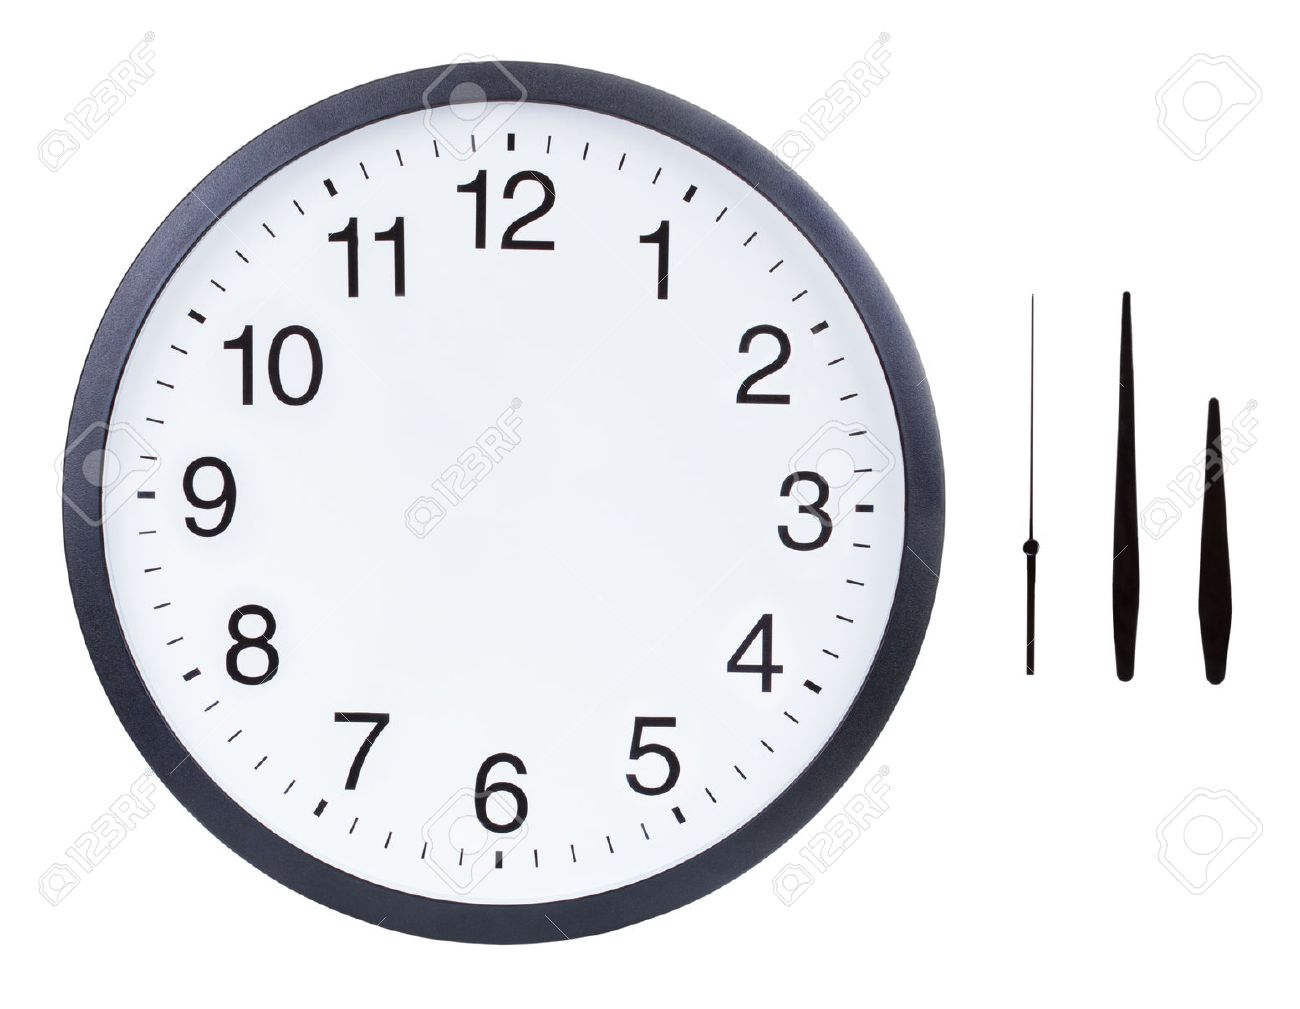 graphic about Printable Clock Face With Hands named Blank clock confront with hour, instant and instant fingers isolated..